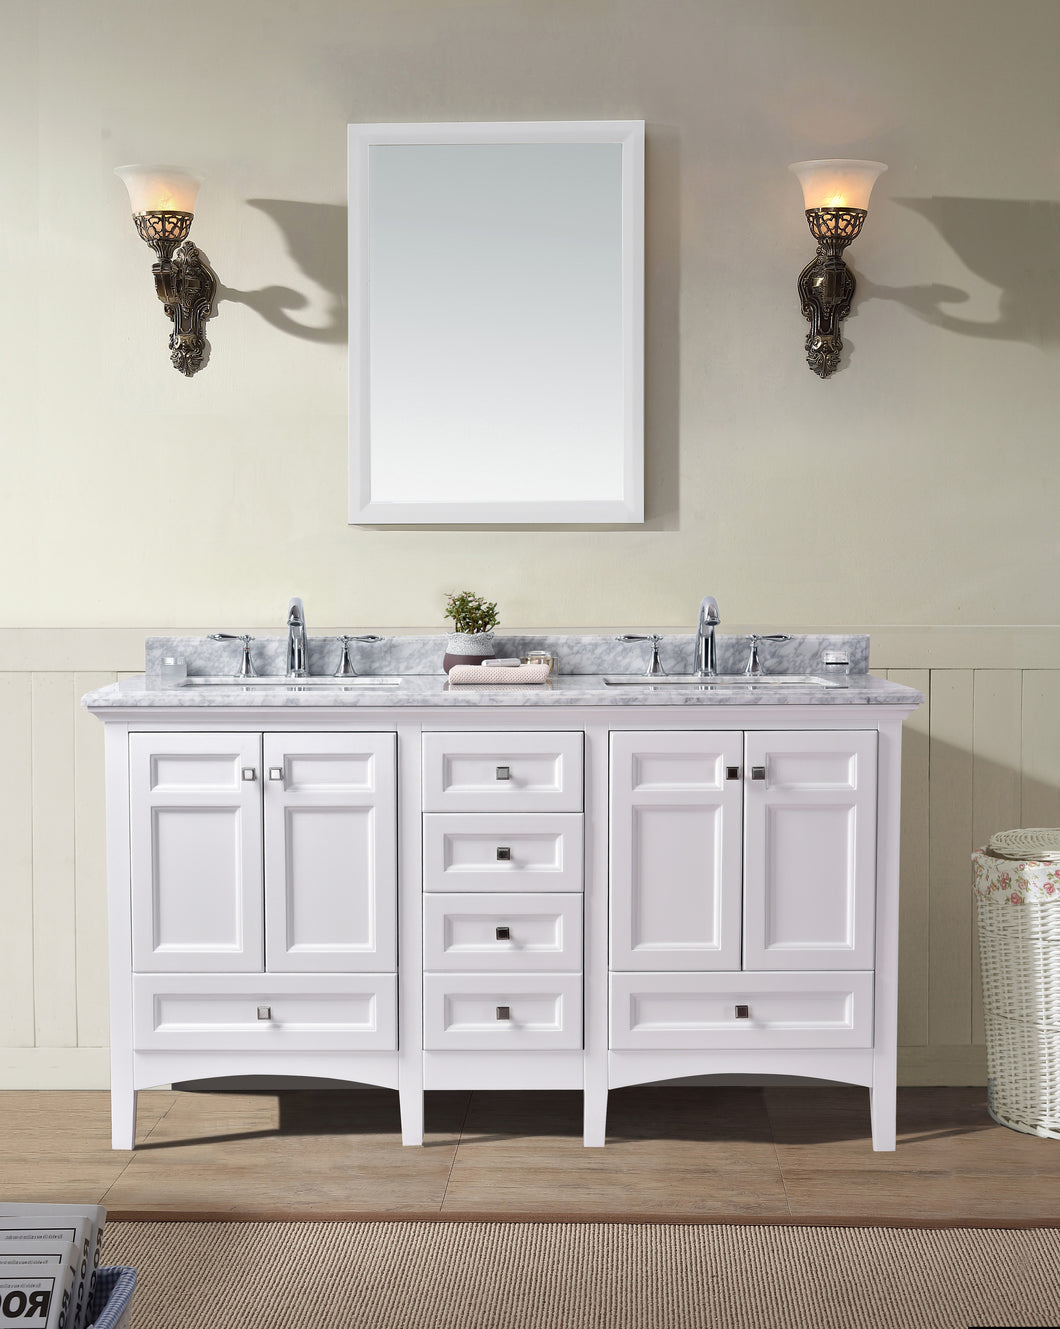 awro product gd sq double usa wh virtu vanity madison caroline